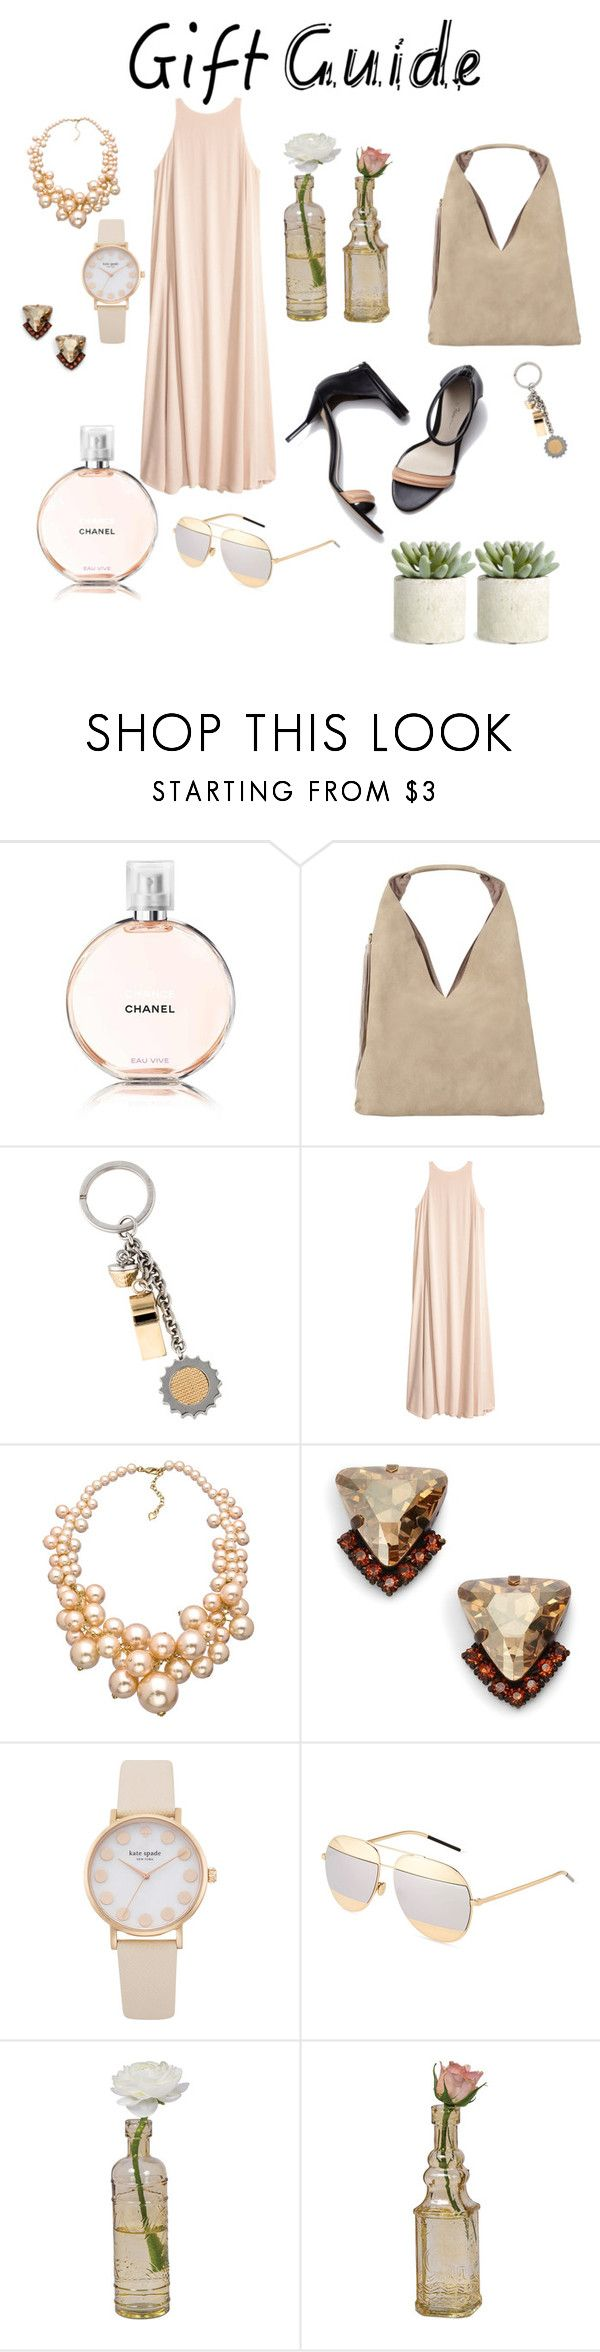 """mommy's best"" by amaliapola ❤ liked on Polyvore featuring Chanel, INZI, 3.1 Phillip Lim, Balenciaga, Carolee, Joanna Laura Constantine, Christian Dior, Cultural Intrigue, Allstate Floral and mothersdaygiftguide"